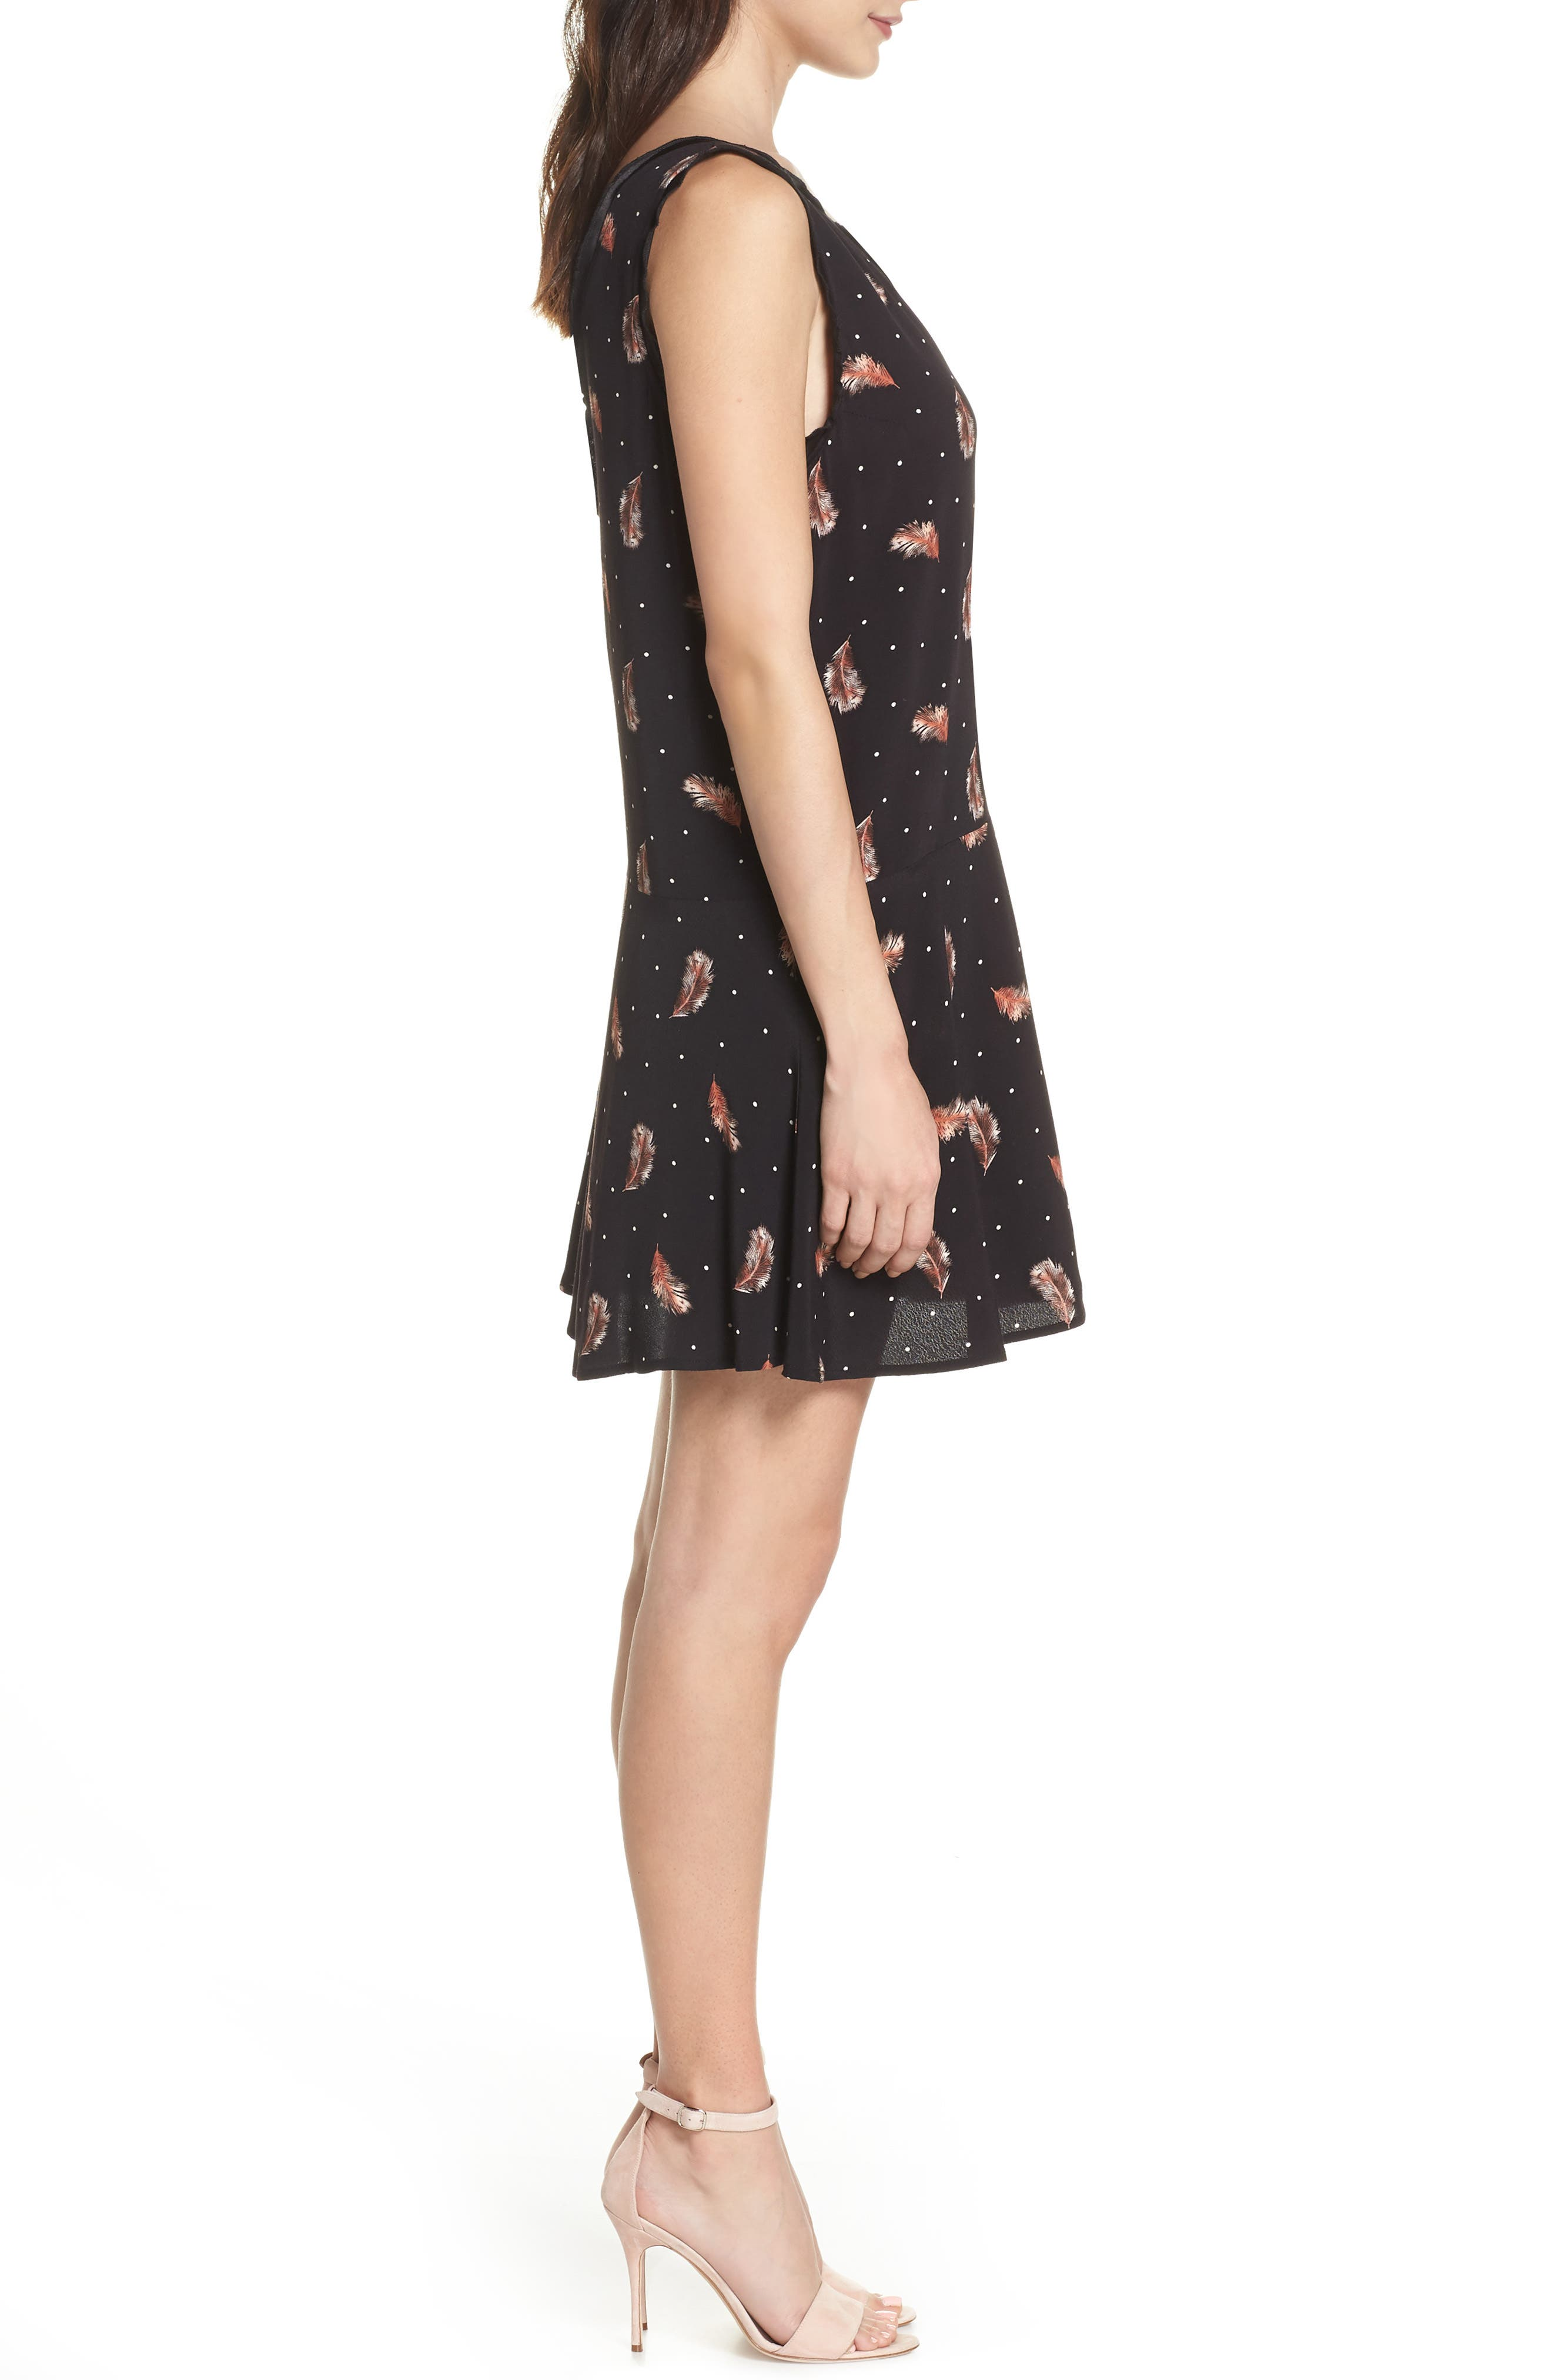 Tuesday Feather Print Dress,                             Alternate thumbnail 3, color,                             Black Feather Dot